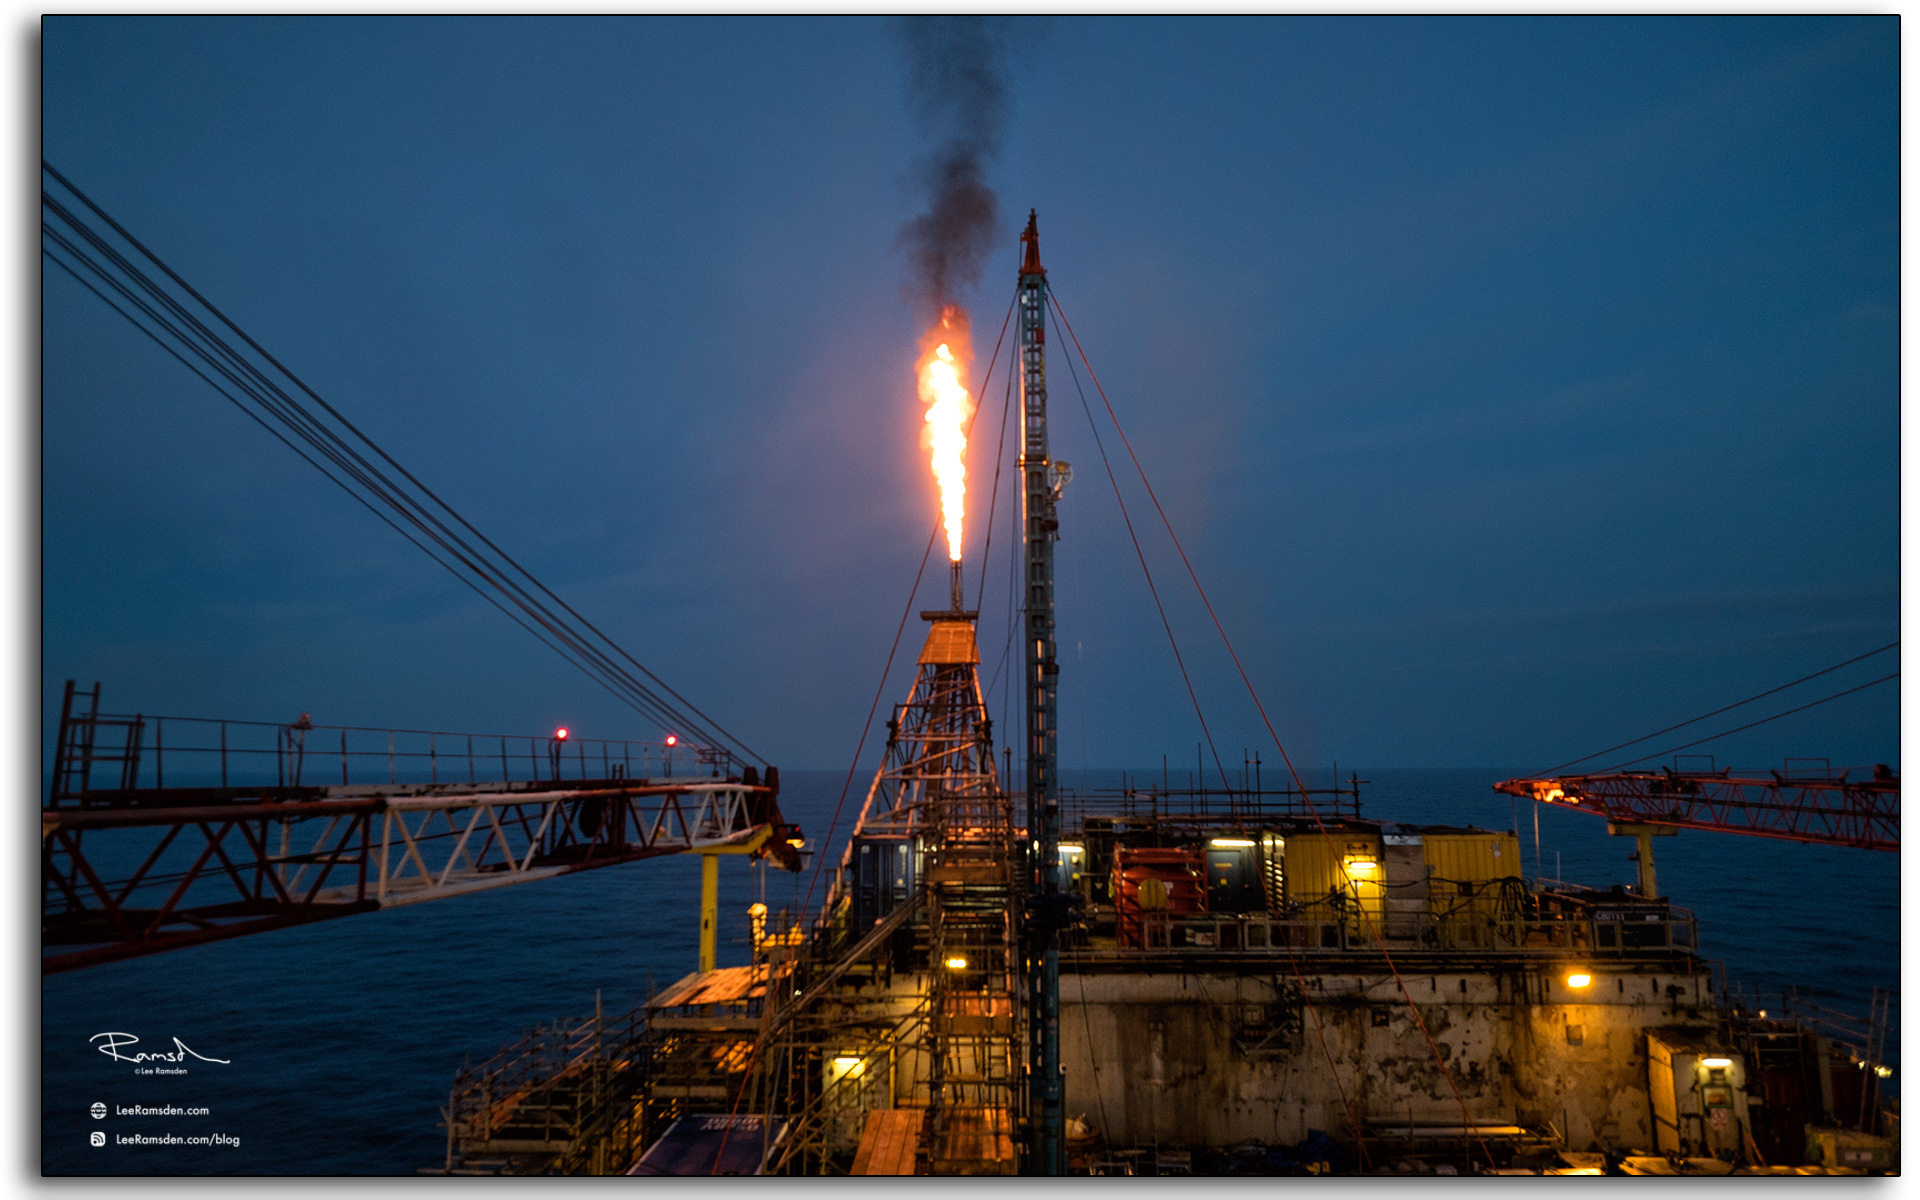 18 Talisman Auk platform flare on the pipe deck north sea oil price equal rotation down man redundancies